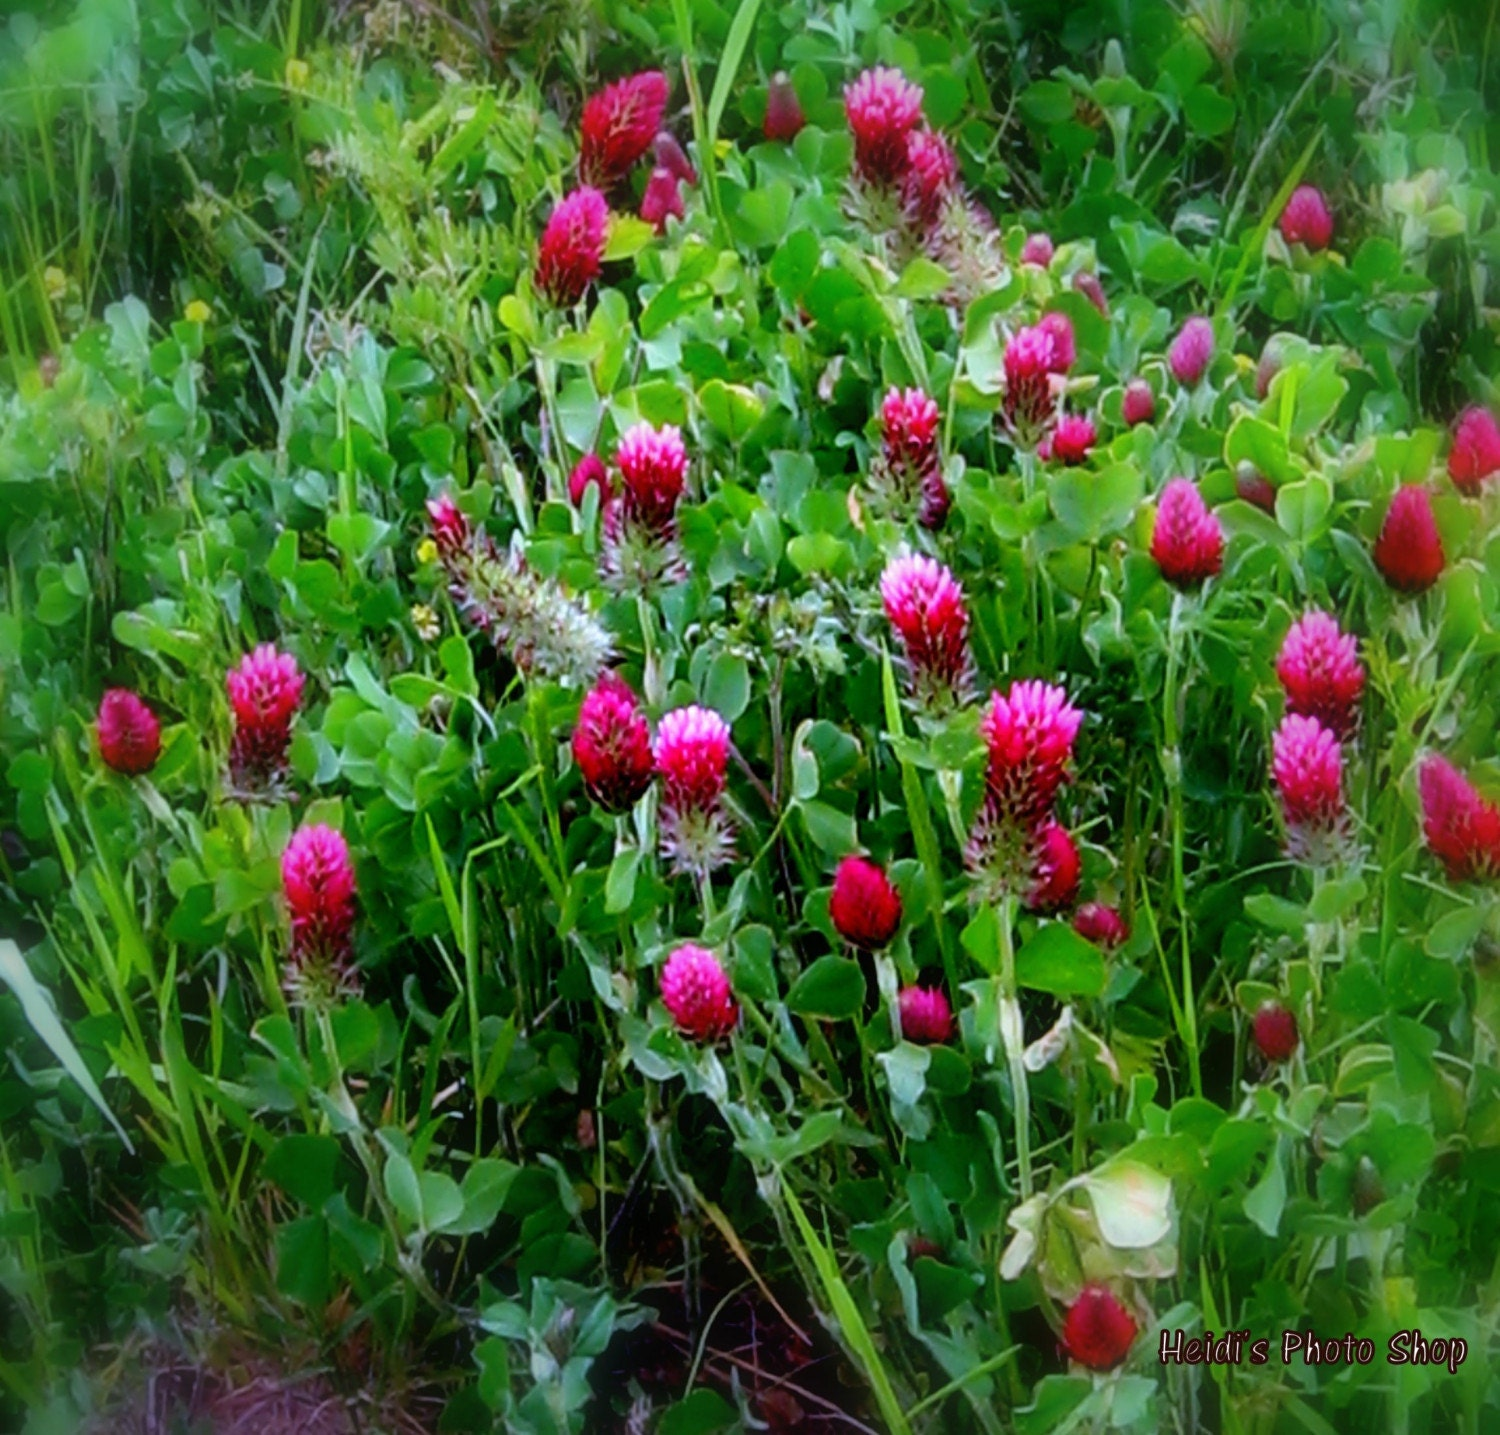 Red Clover so Softly 5 X 7